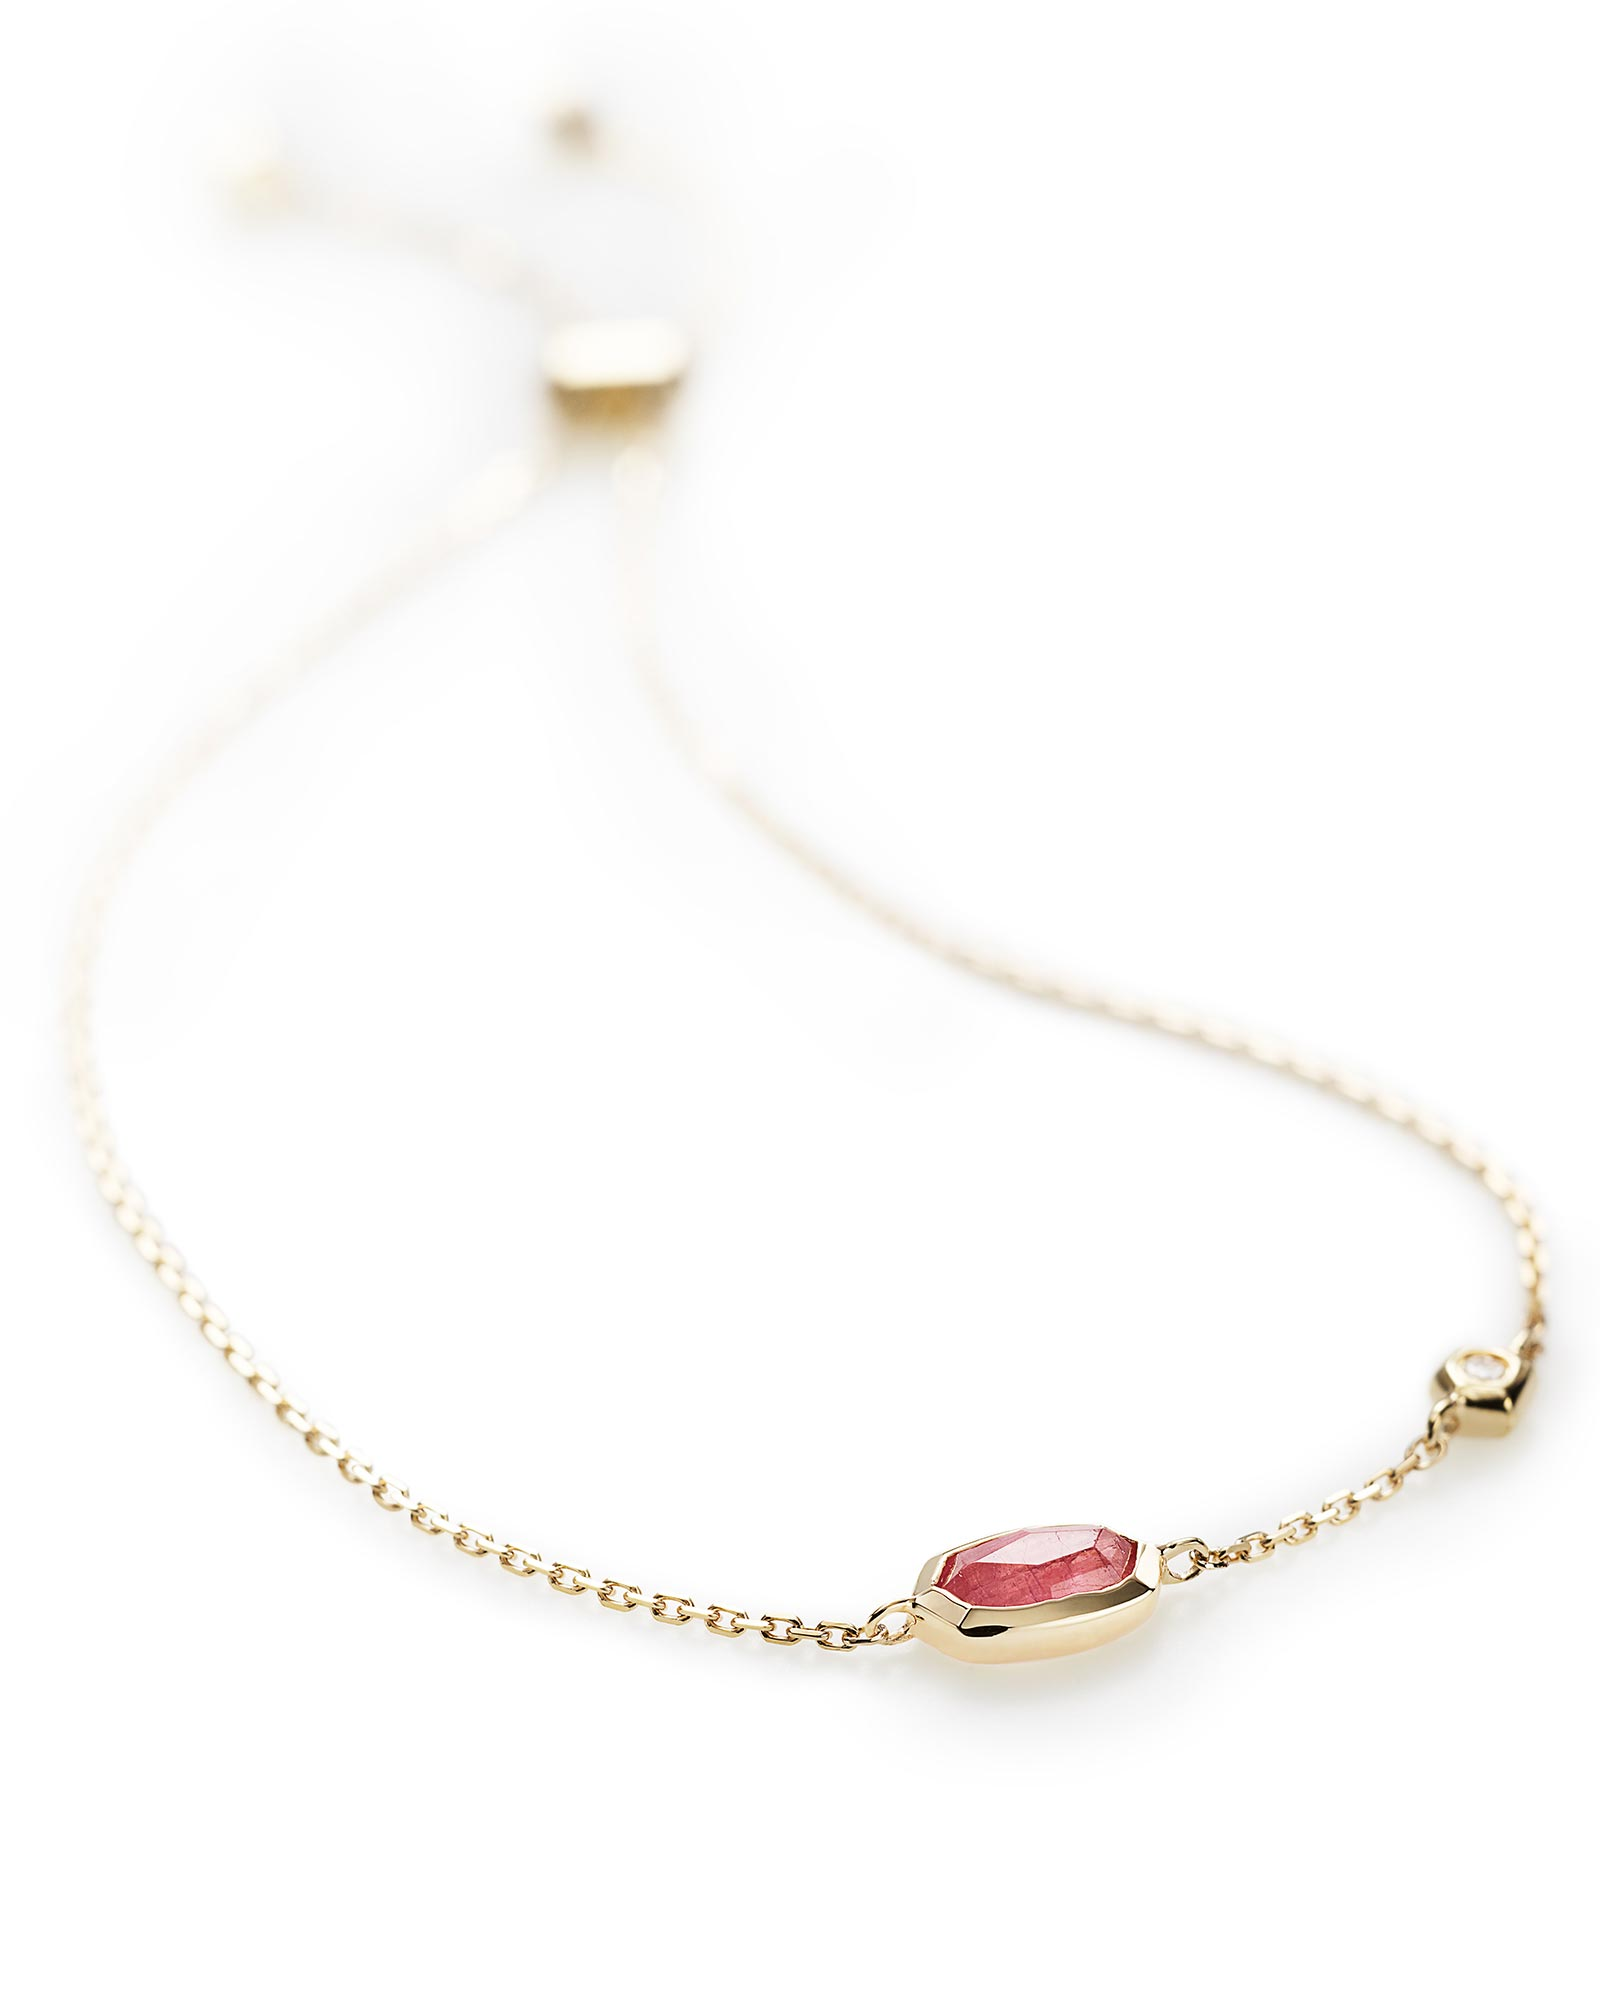 Benson Adjustable Bracelet in Pink Tourmaline and 14k Yellow Gold